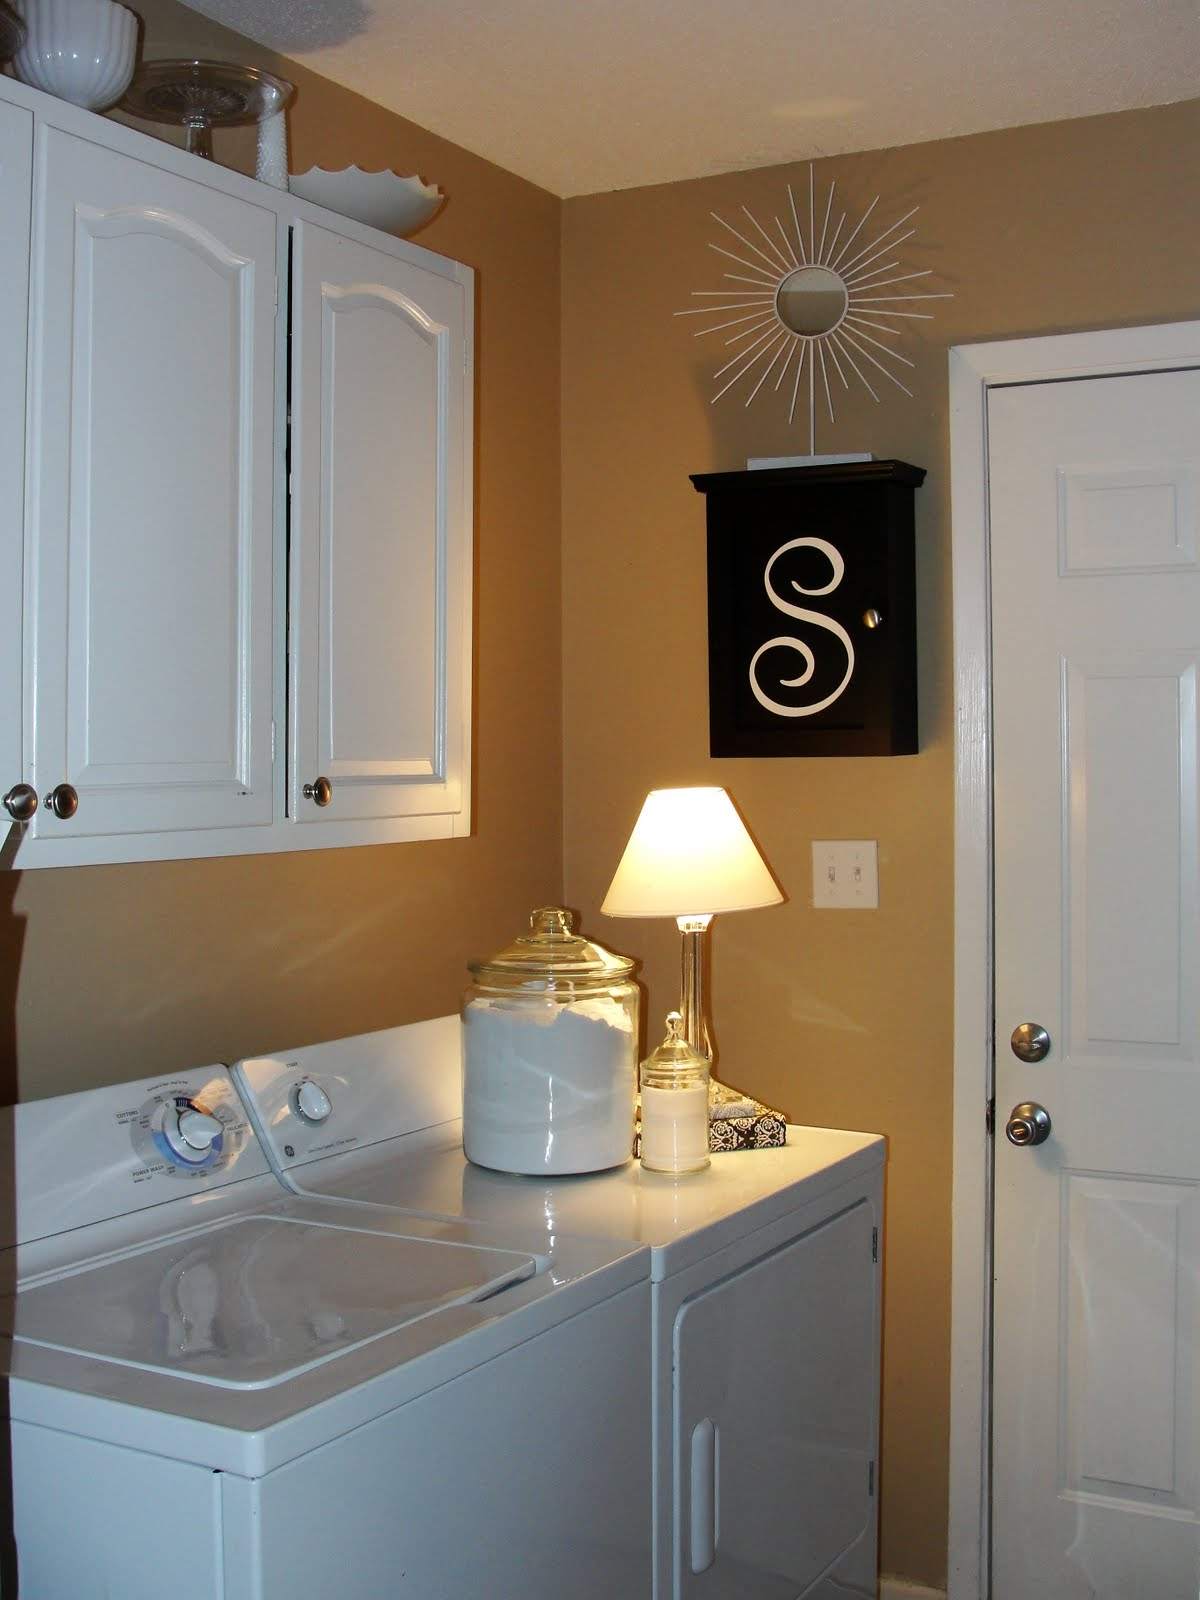 How To Clean Your Closet Imperfectly Beautiful Laundry Room Mini Makeover